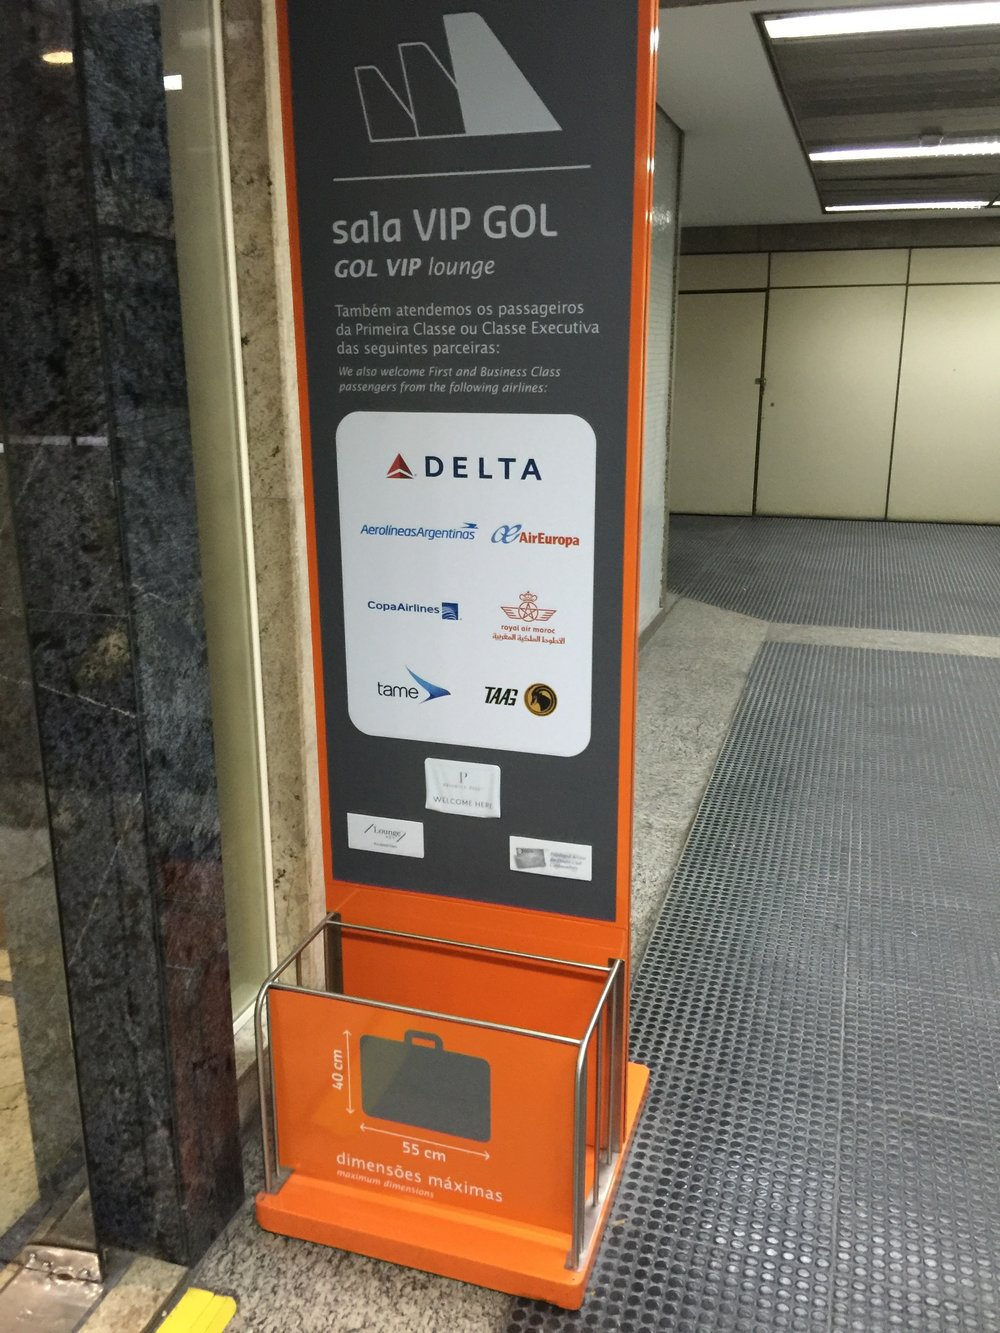 São Paulo has no Sky Club, but Delta One passengers have access to the GOL VIP Lounge